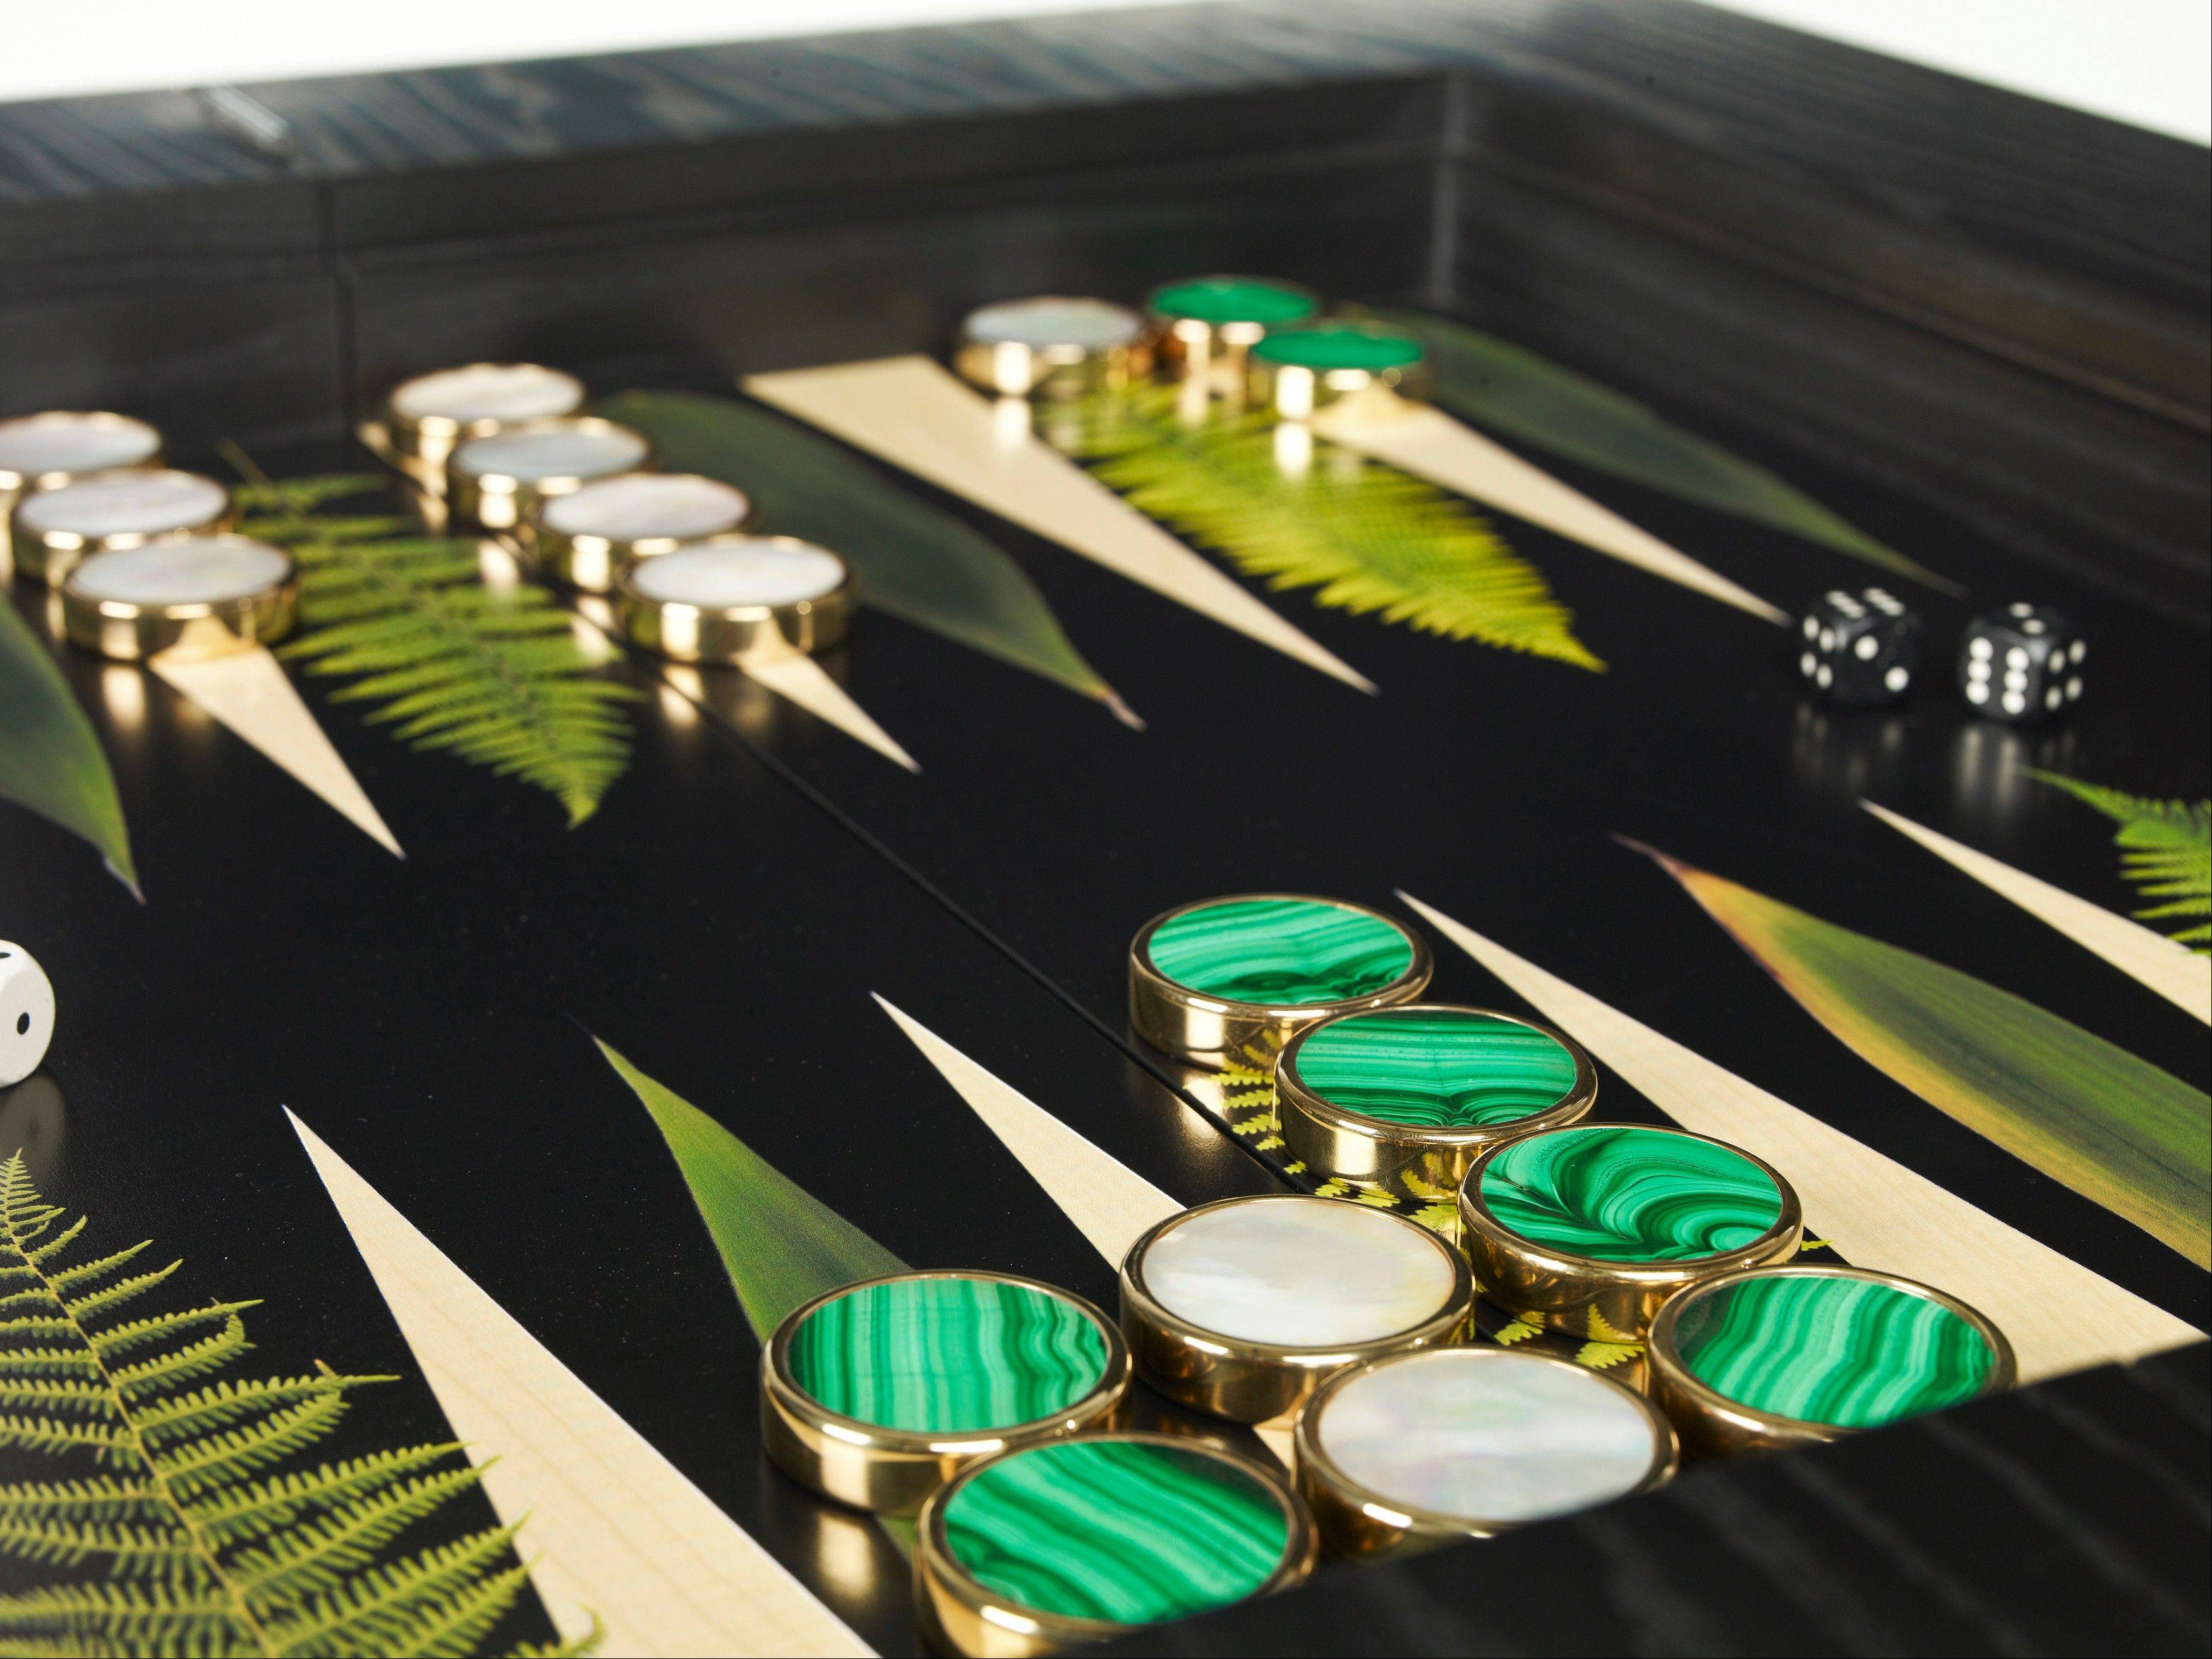 A Louisa backgammon set from Alexandralldesign.com. Alexandra Llewellyn creates custom sets that can be highly personalized. Bespoke game pieces made of semi-precious stones like lapis lazuli, malachite and jasper are encased in polished brass, and may be engraved.